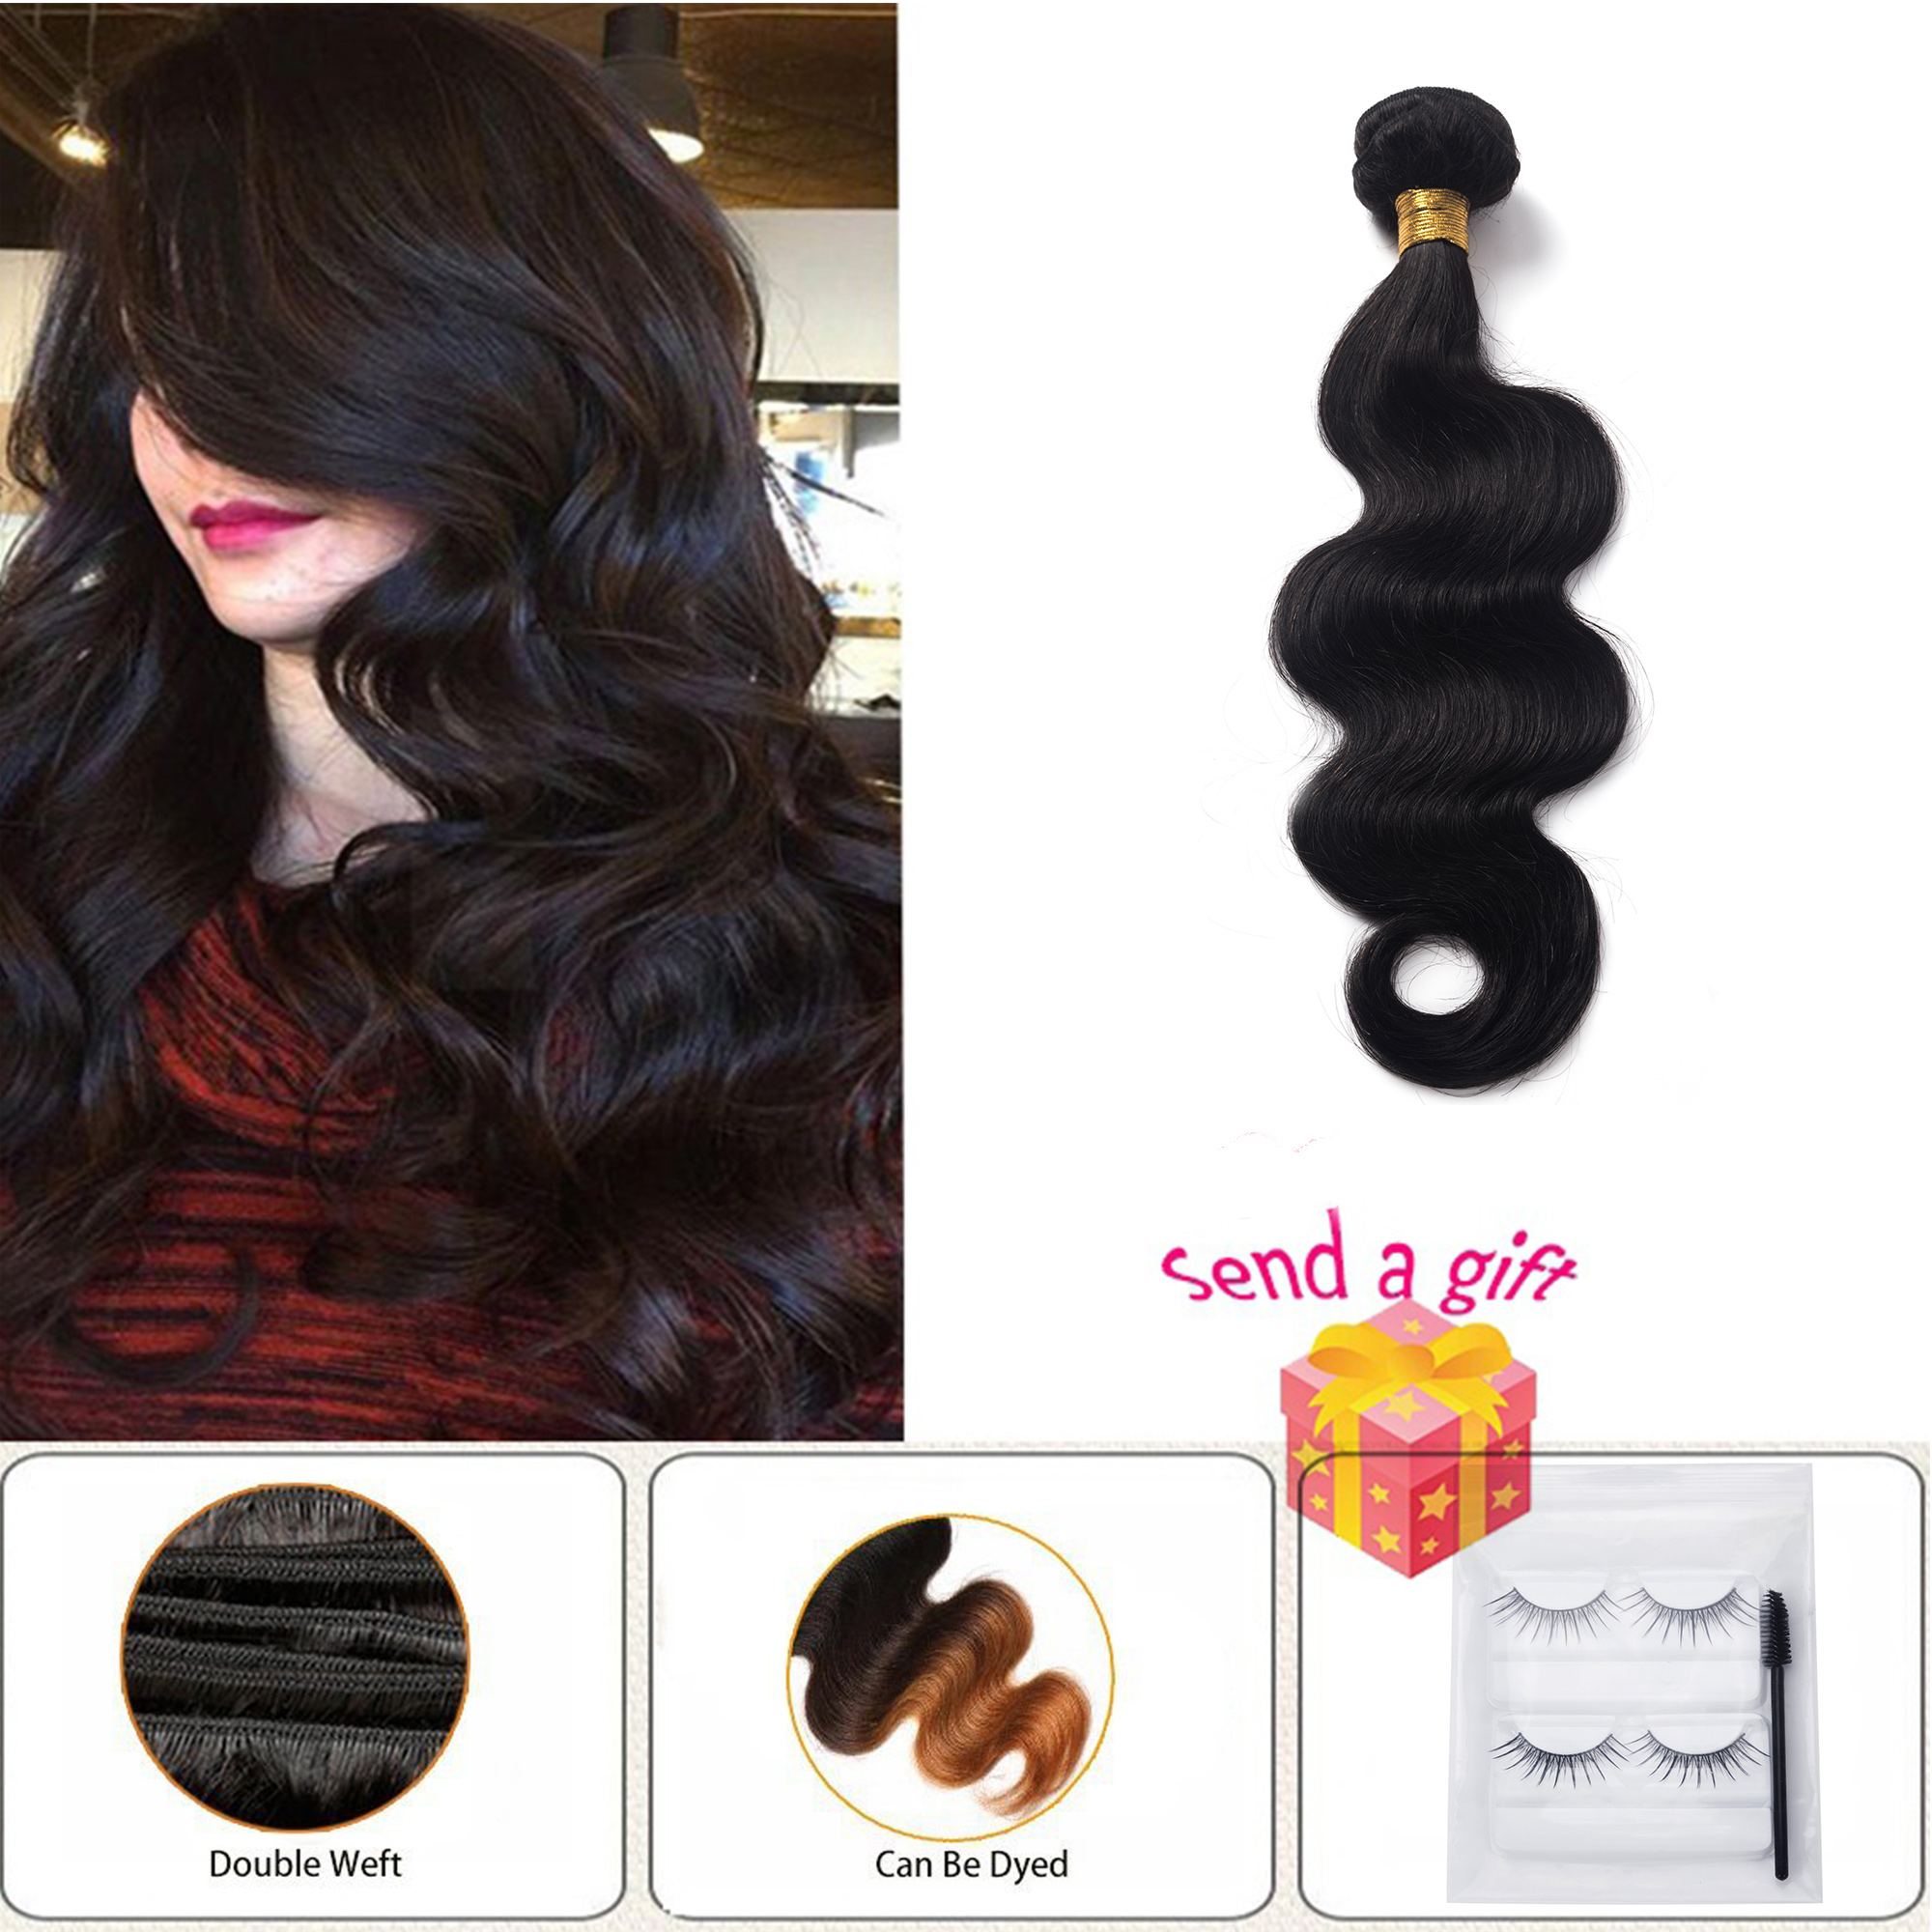 Woman Girl Real Soft Sliky Full Head Curly Wavy Hair Real Hair 7A Unprocessed Virgin Brazilian Hair Bundles Human Hair Straight Extensions Natural Black 1 Bundle 50g/100g